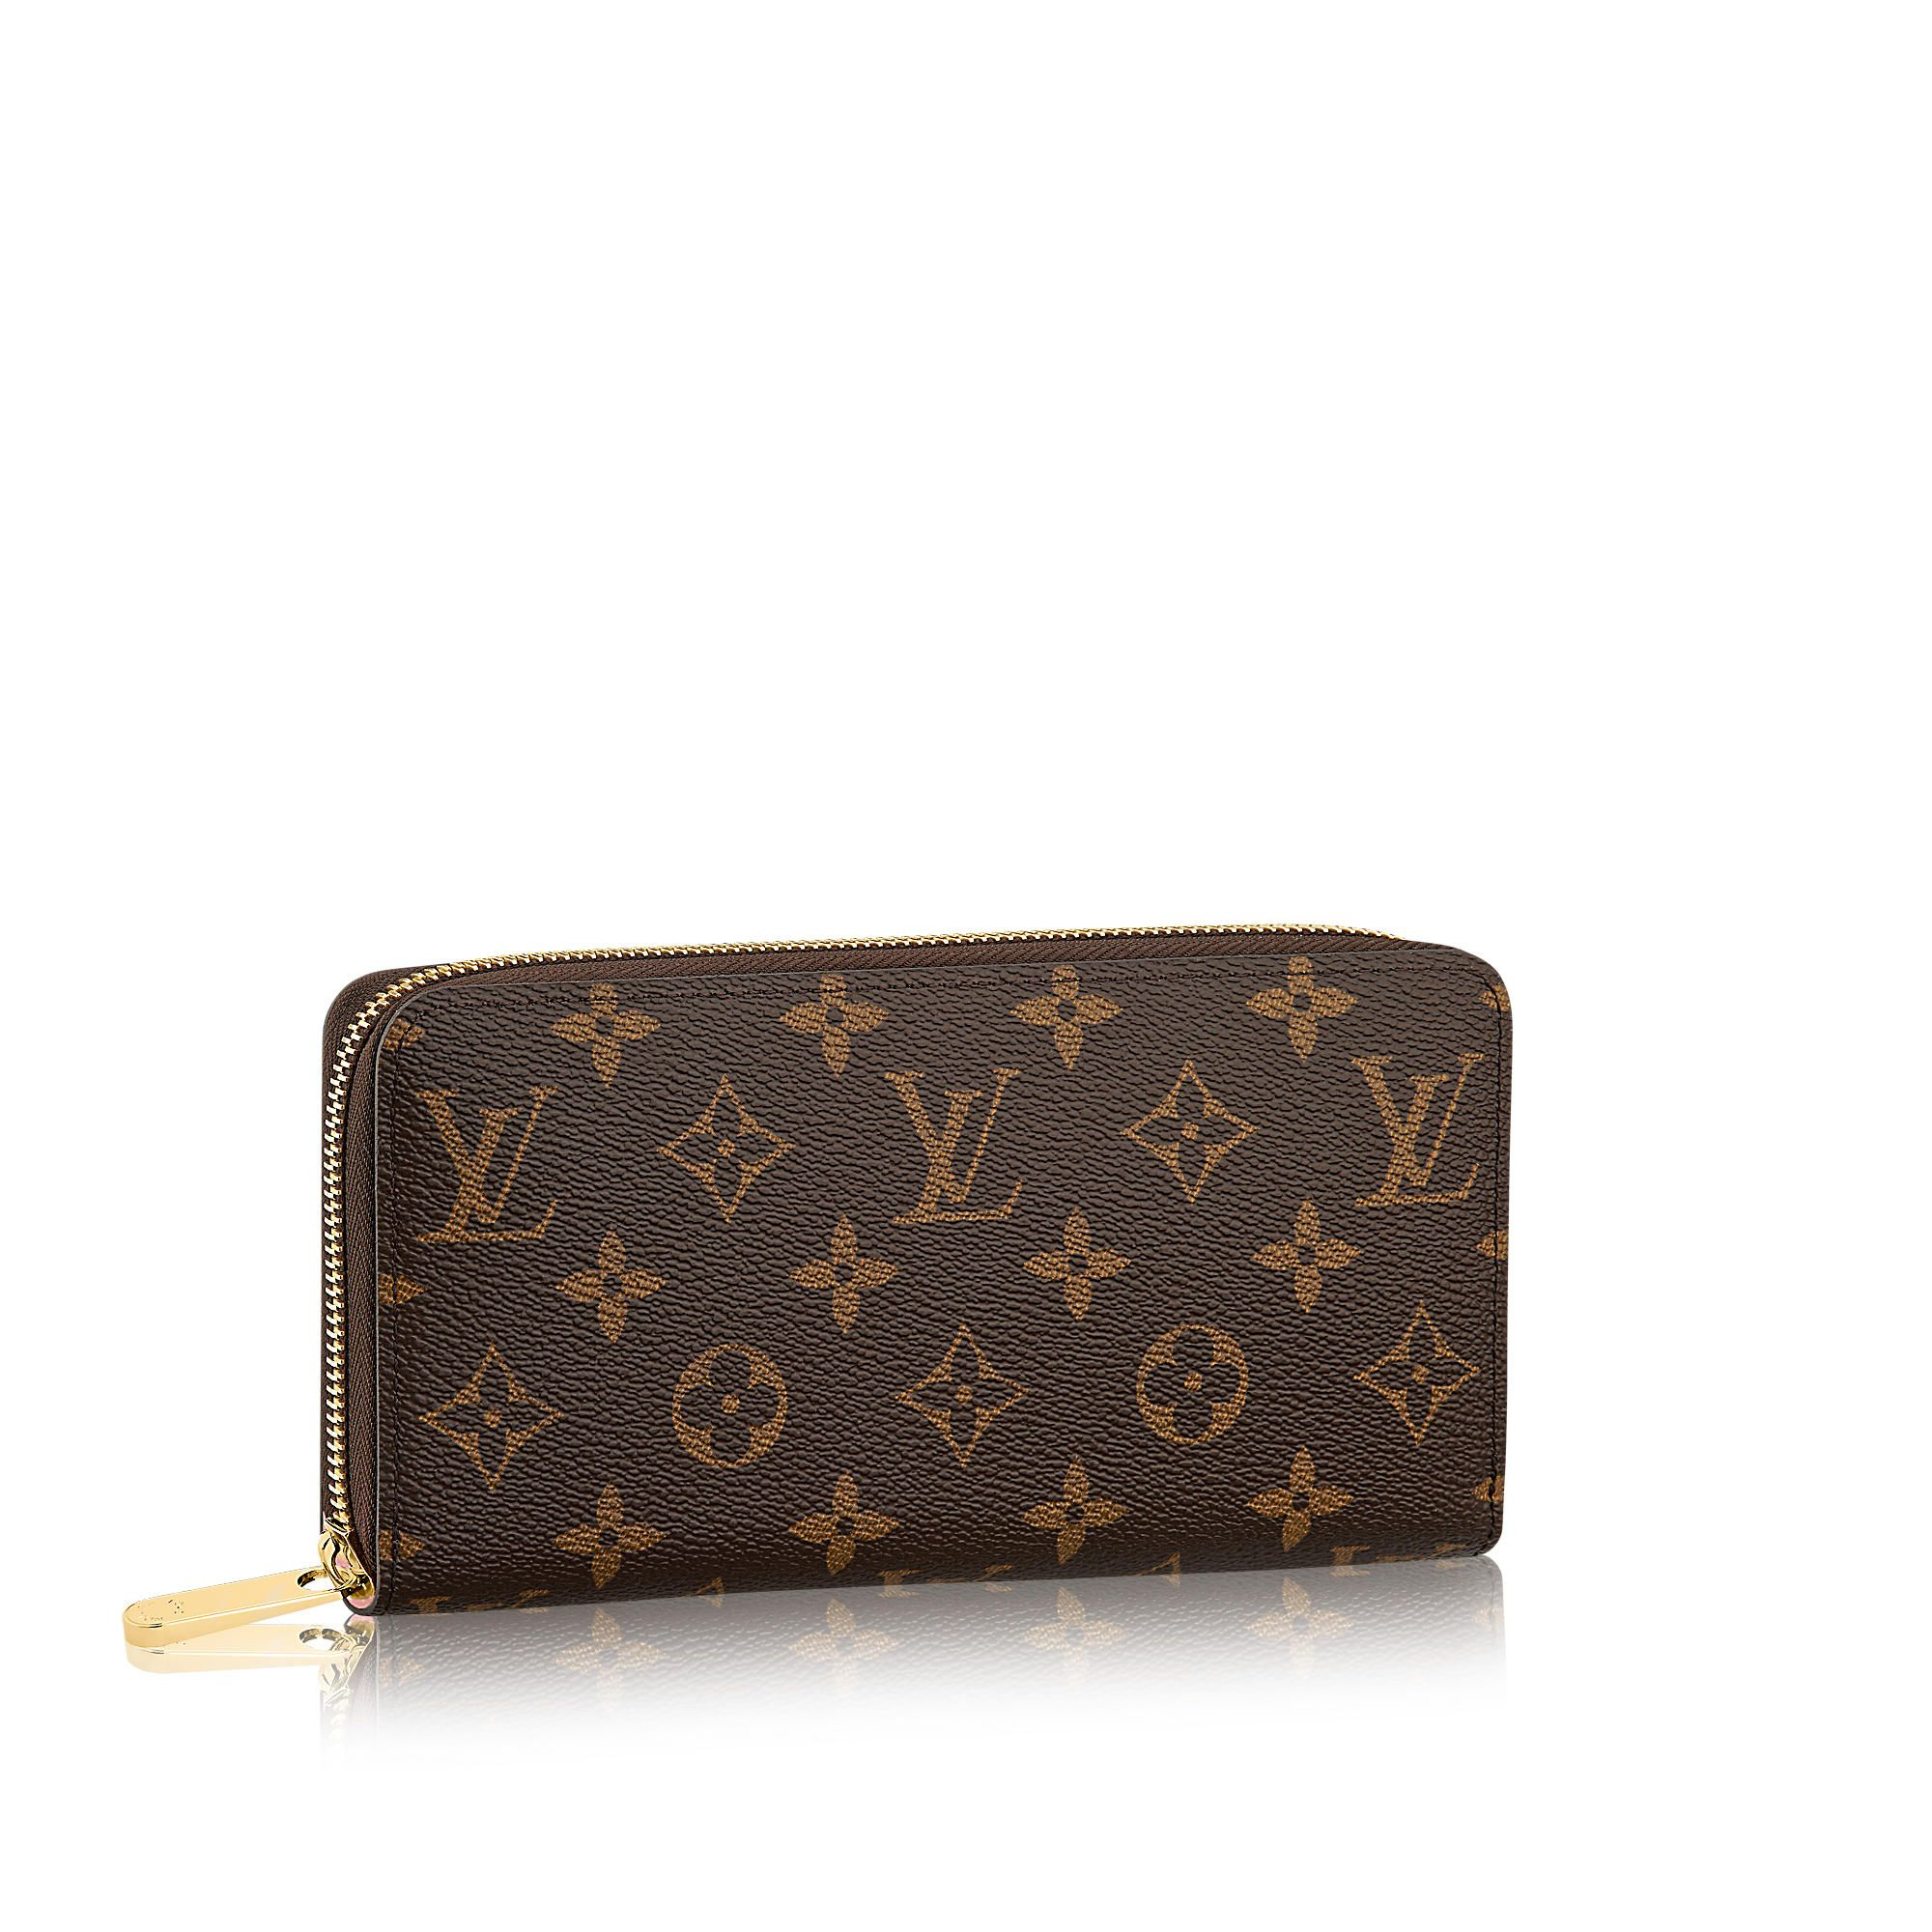 Portefeuille Zippy via Louis Vuitton   Sac   Louis vuitton ... 77c9bb8ffa7